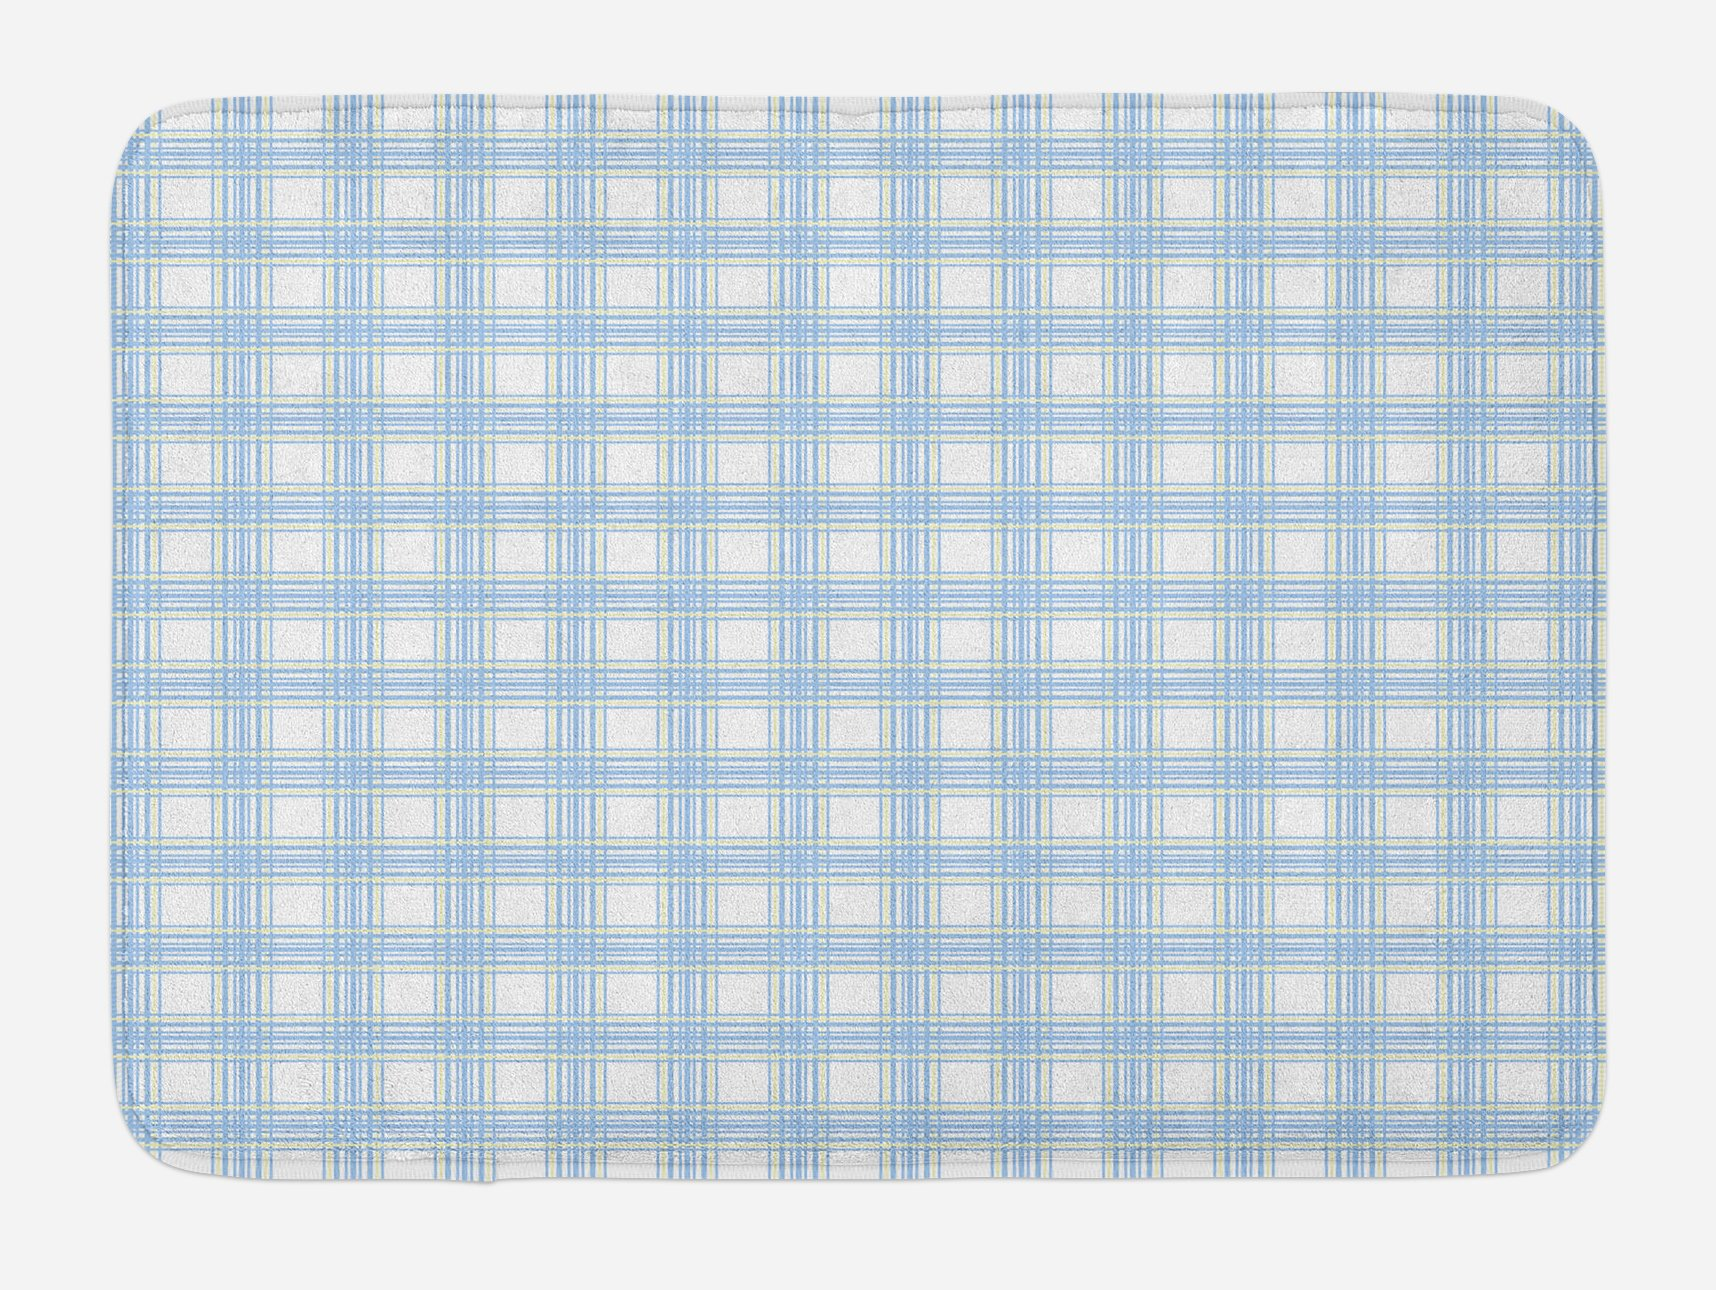 Lunarable Plaid Bath Mat, Geometrical Striped Old Fashioned Pattern in Pastel Colors Country Style, Plush Bathroom Decor Mat with Non Slip Backing, 29.5 W X 17.5 W Inches, Baby Blue Yellow White